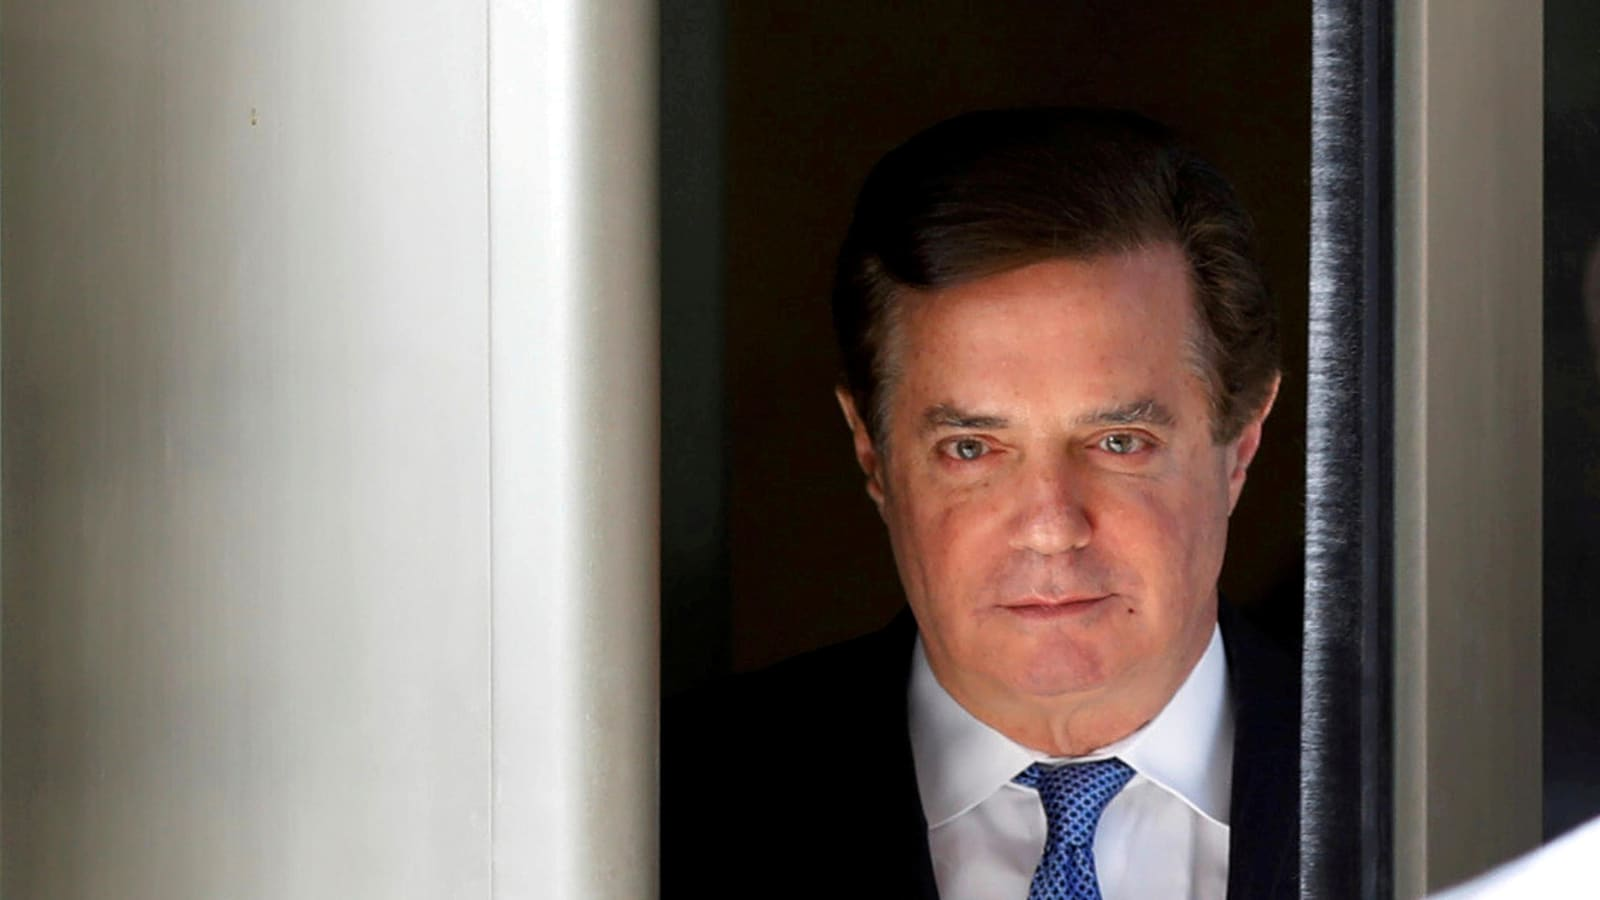 Paul Manafort, ancien directeur de campagne du président américain Donald Tump, quittant le tribunal de district de Washington.